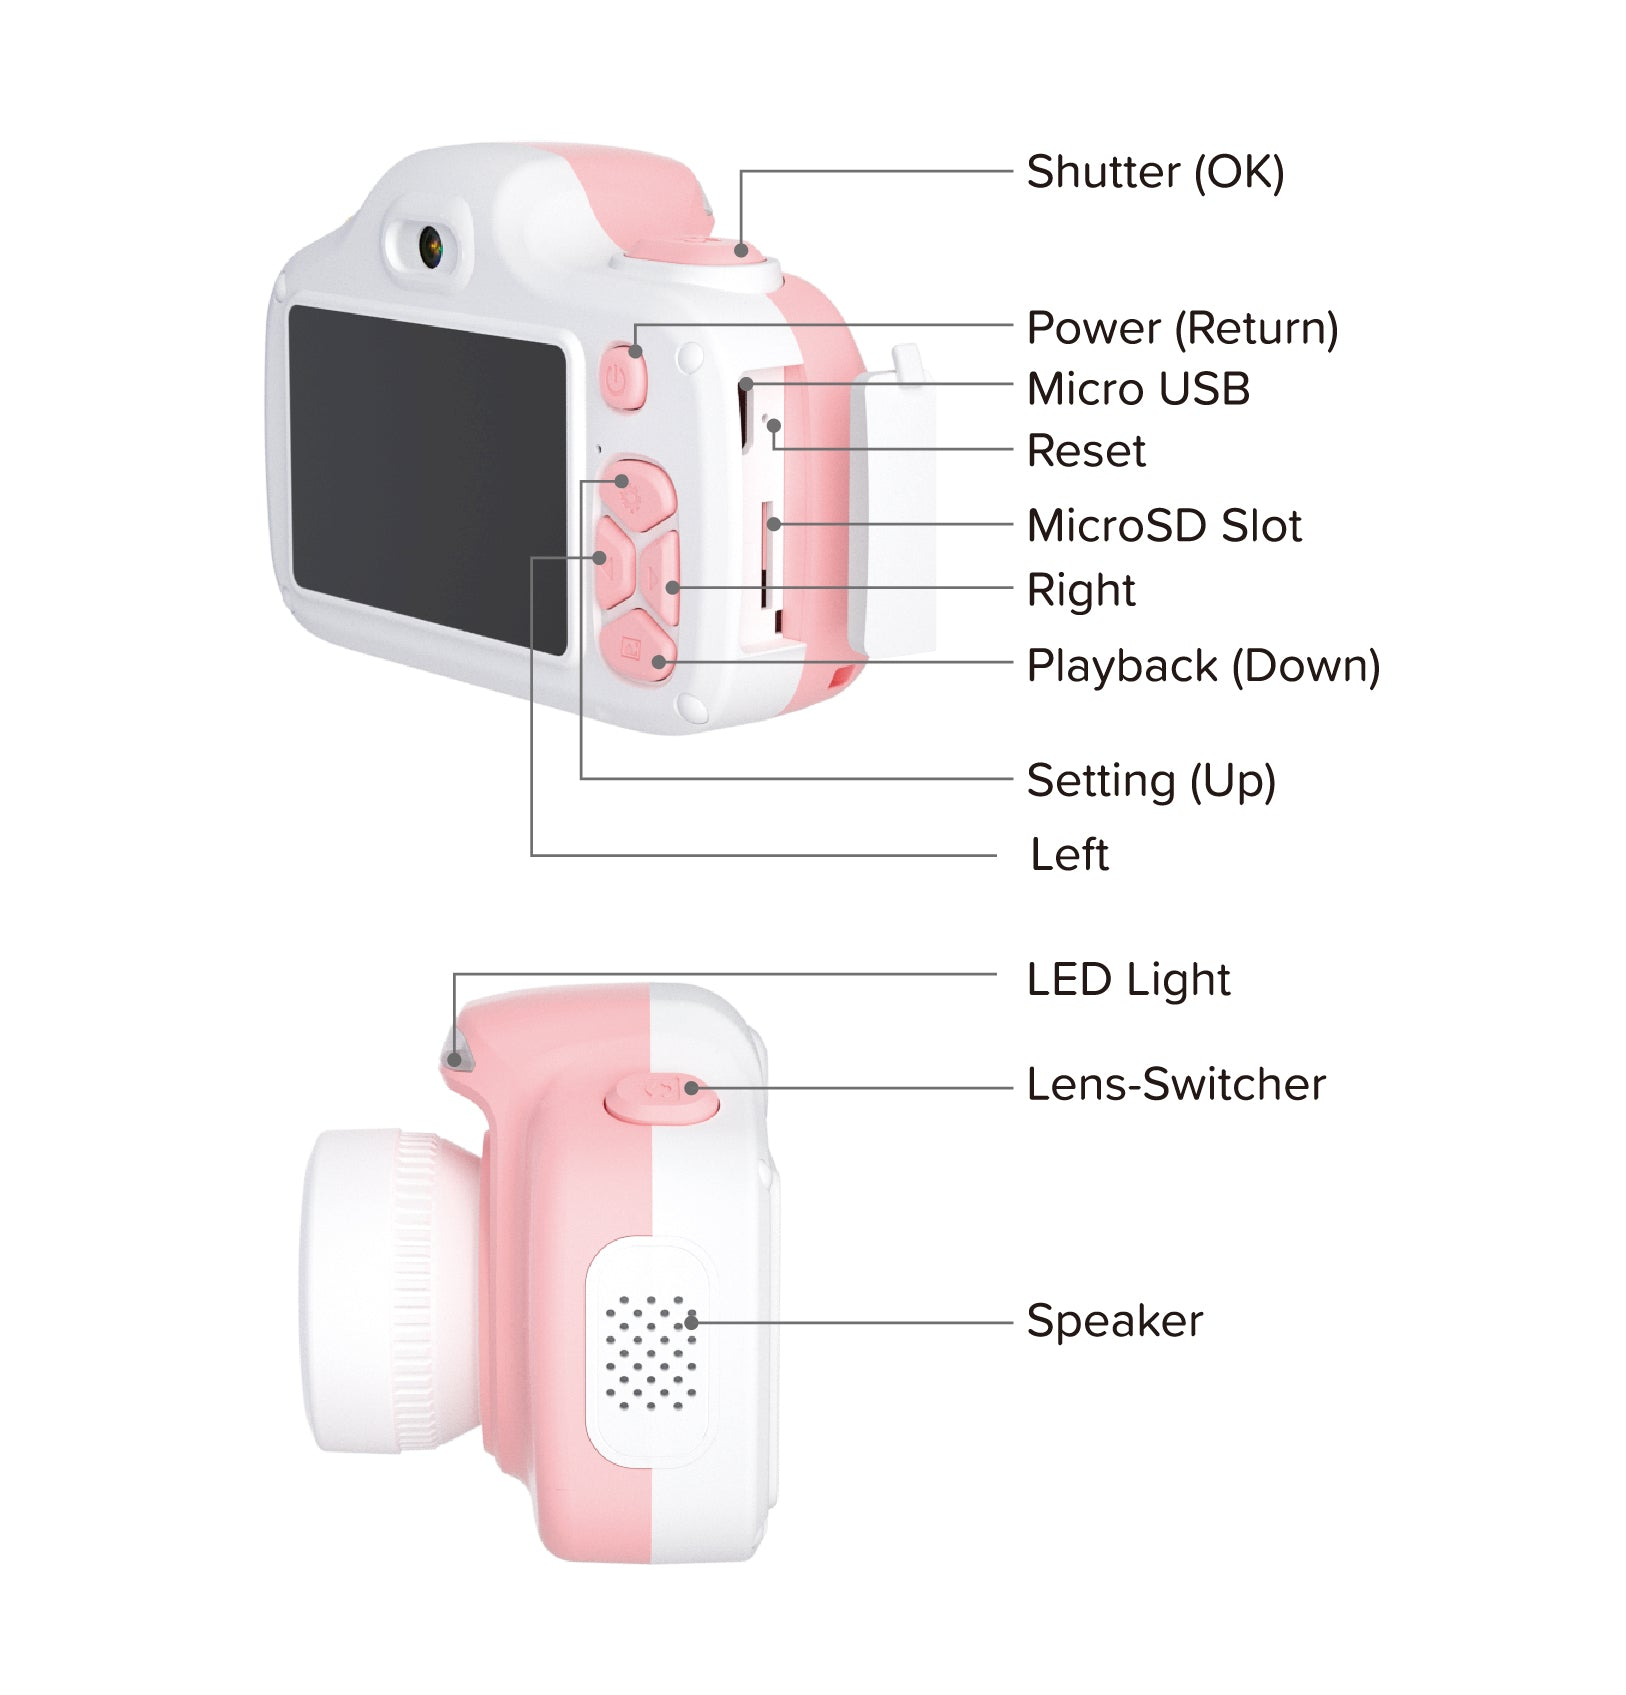 myFirst Camera 3 Features - 16MP Mini Camera for kids with selfie lens